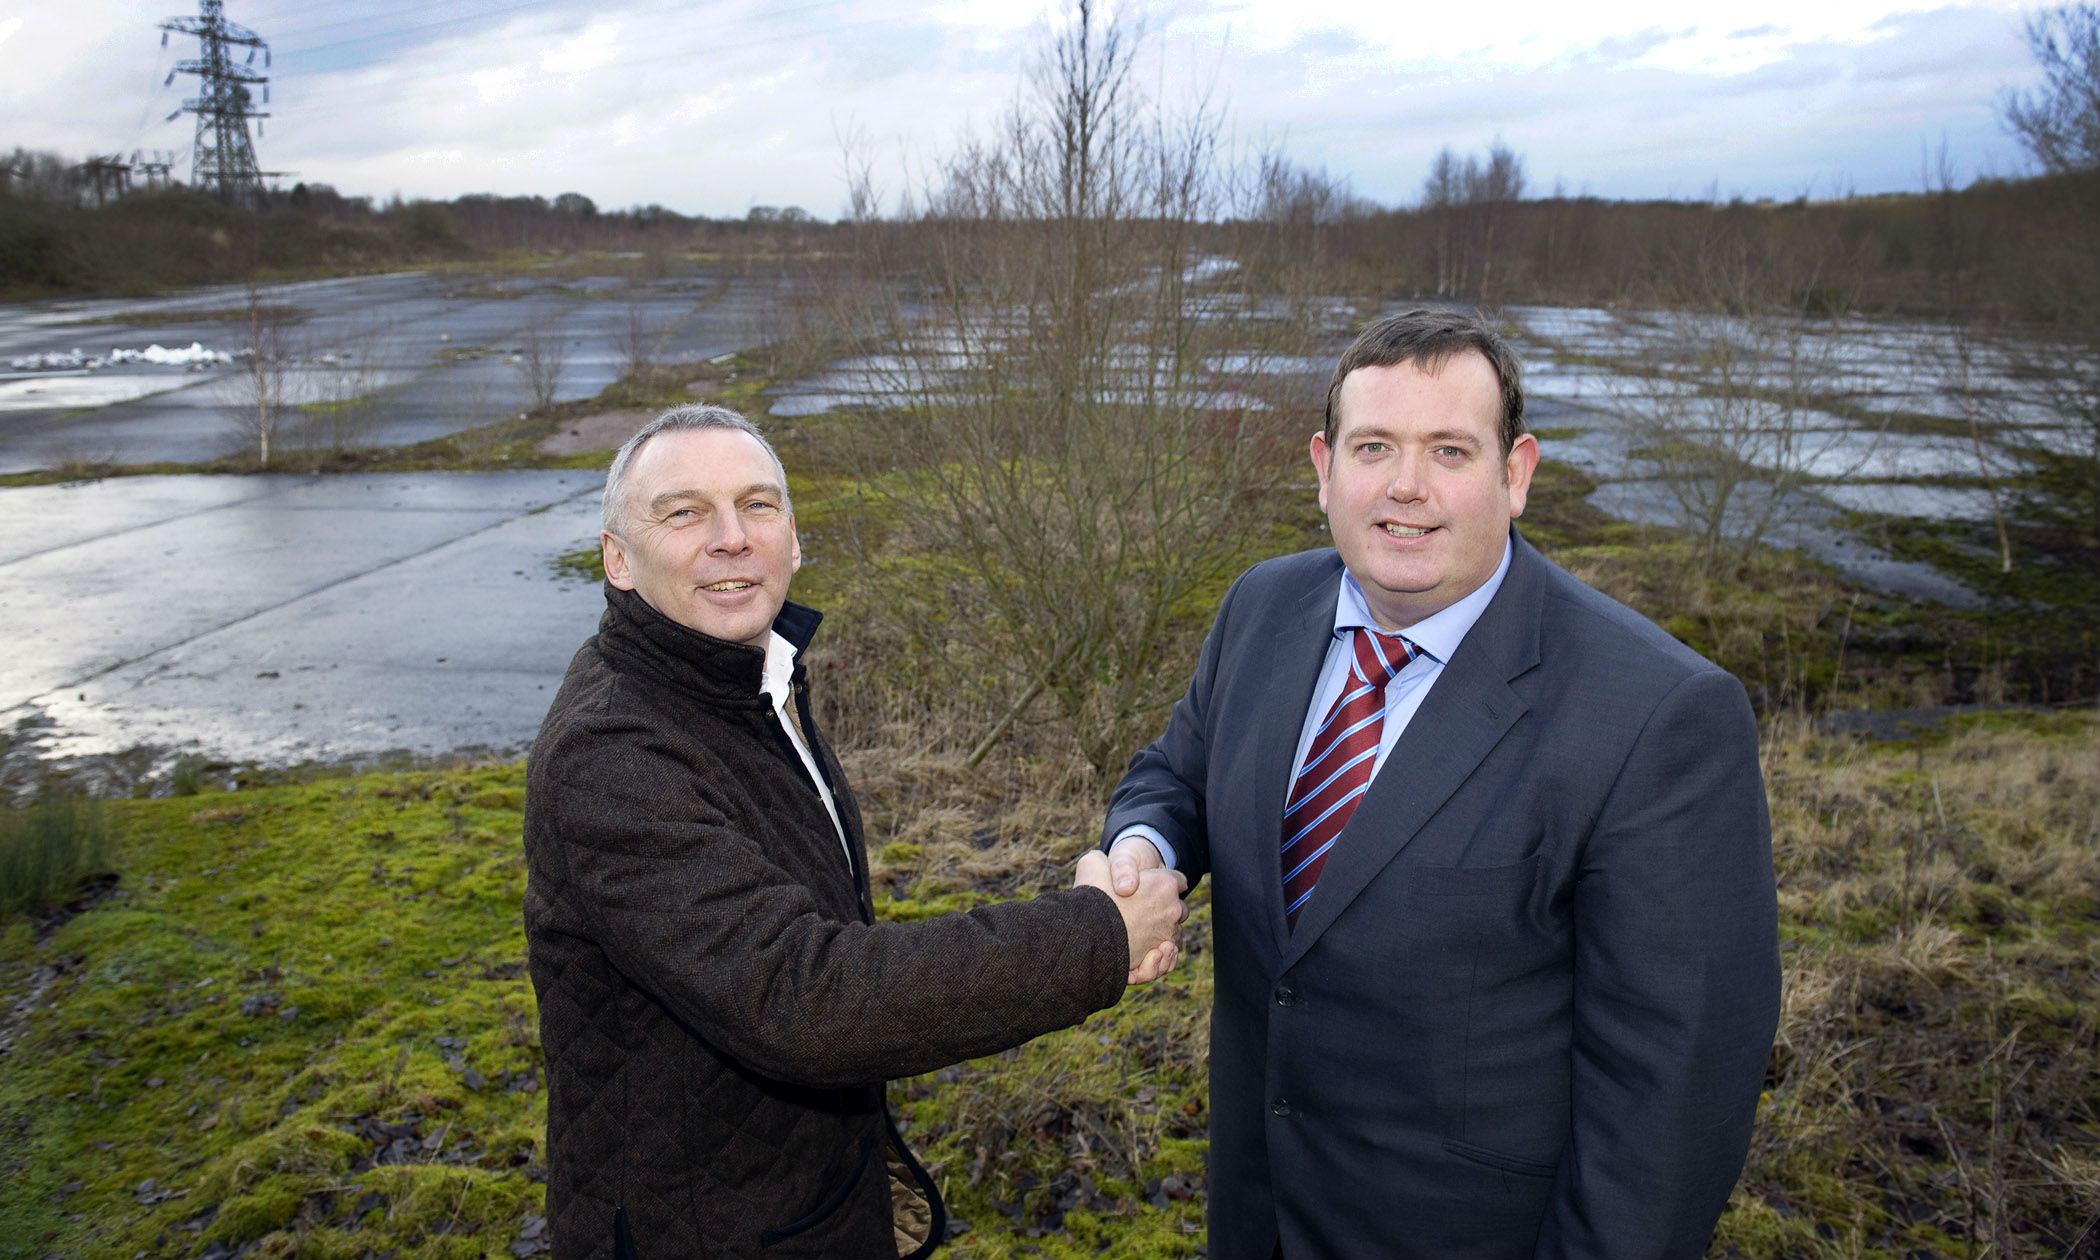 Council leader Barrie Grunewald (right) with Langtree chief executive John Downes at the Parkside site